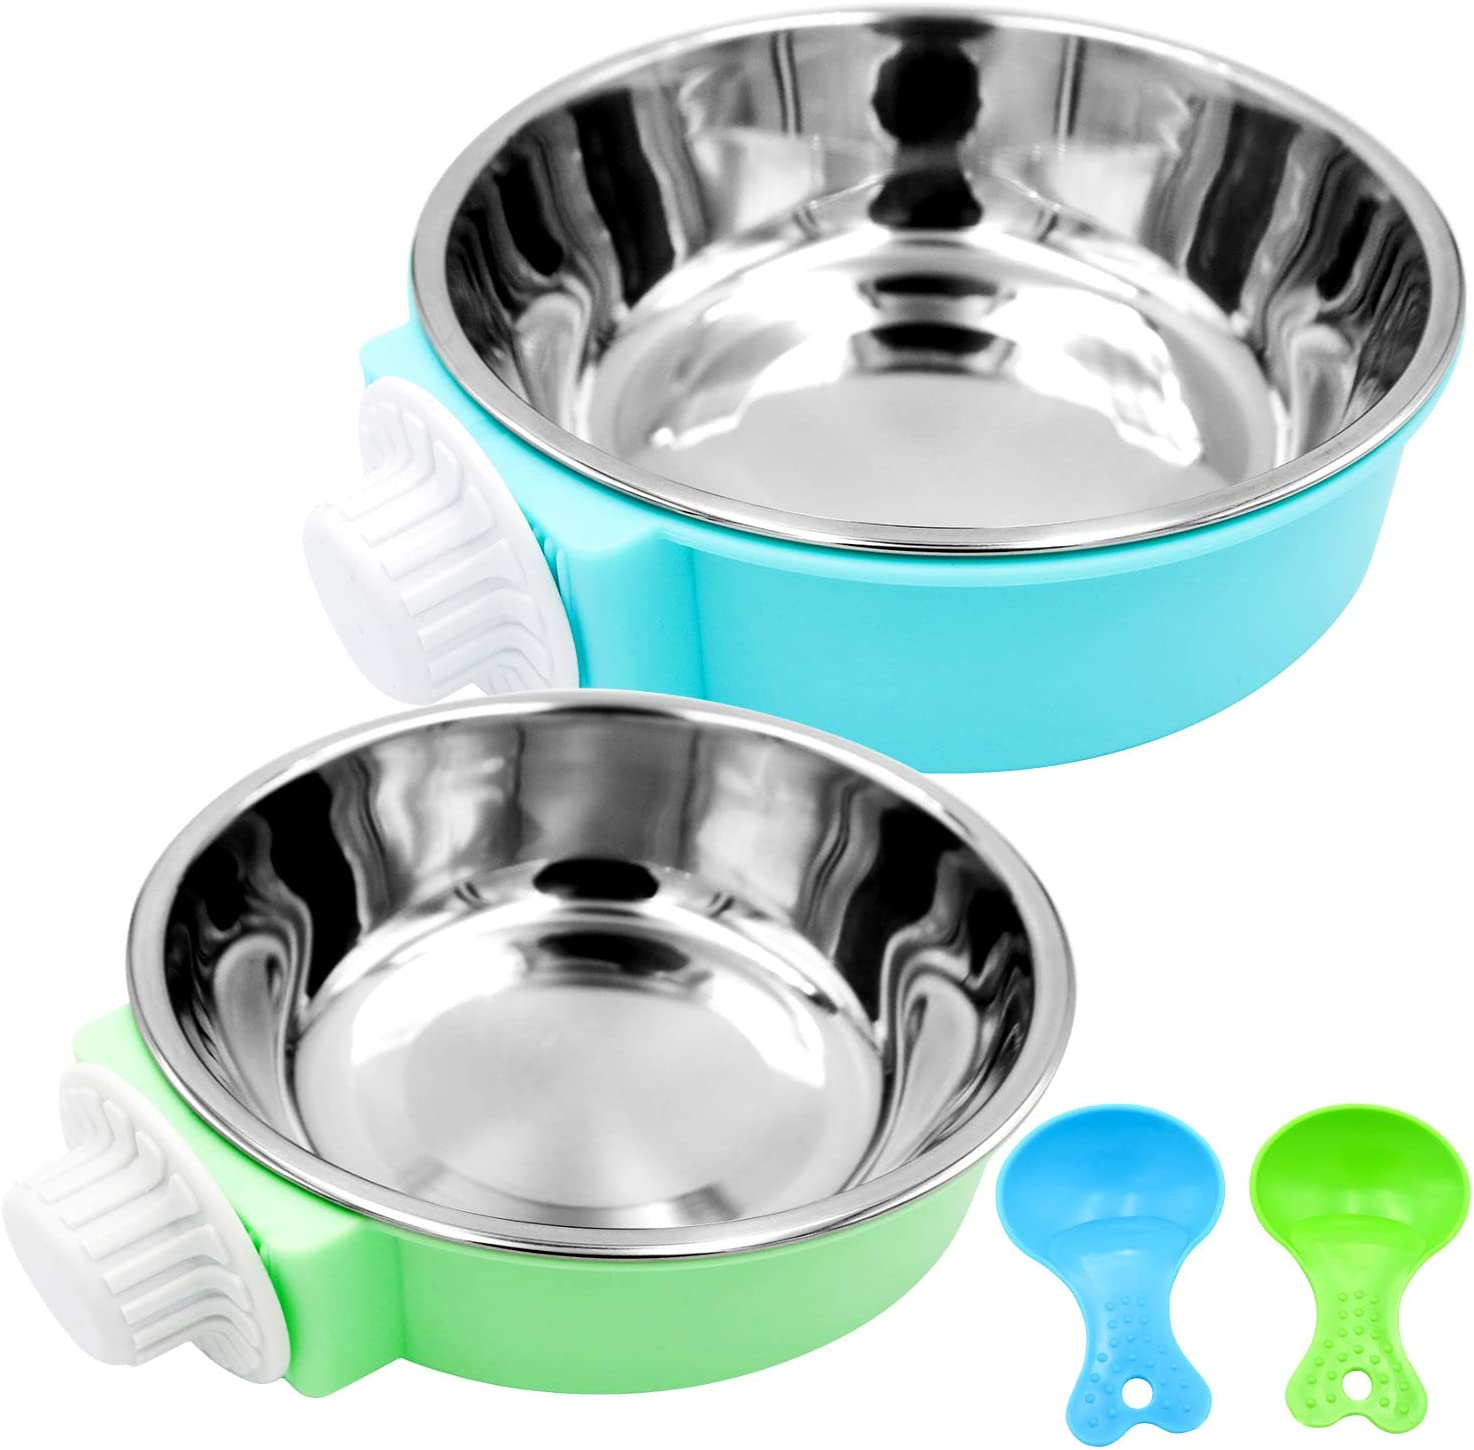 Bac-kitchen Crate Dog Bowl - Removable Stainless Steel Hanging Pet Cage Bowl Food & Water Feeder Coop Cup for Cat Puppy Bird Pets Guinea Pigs